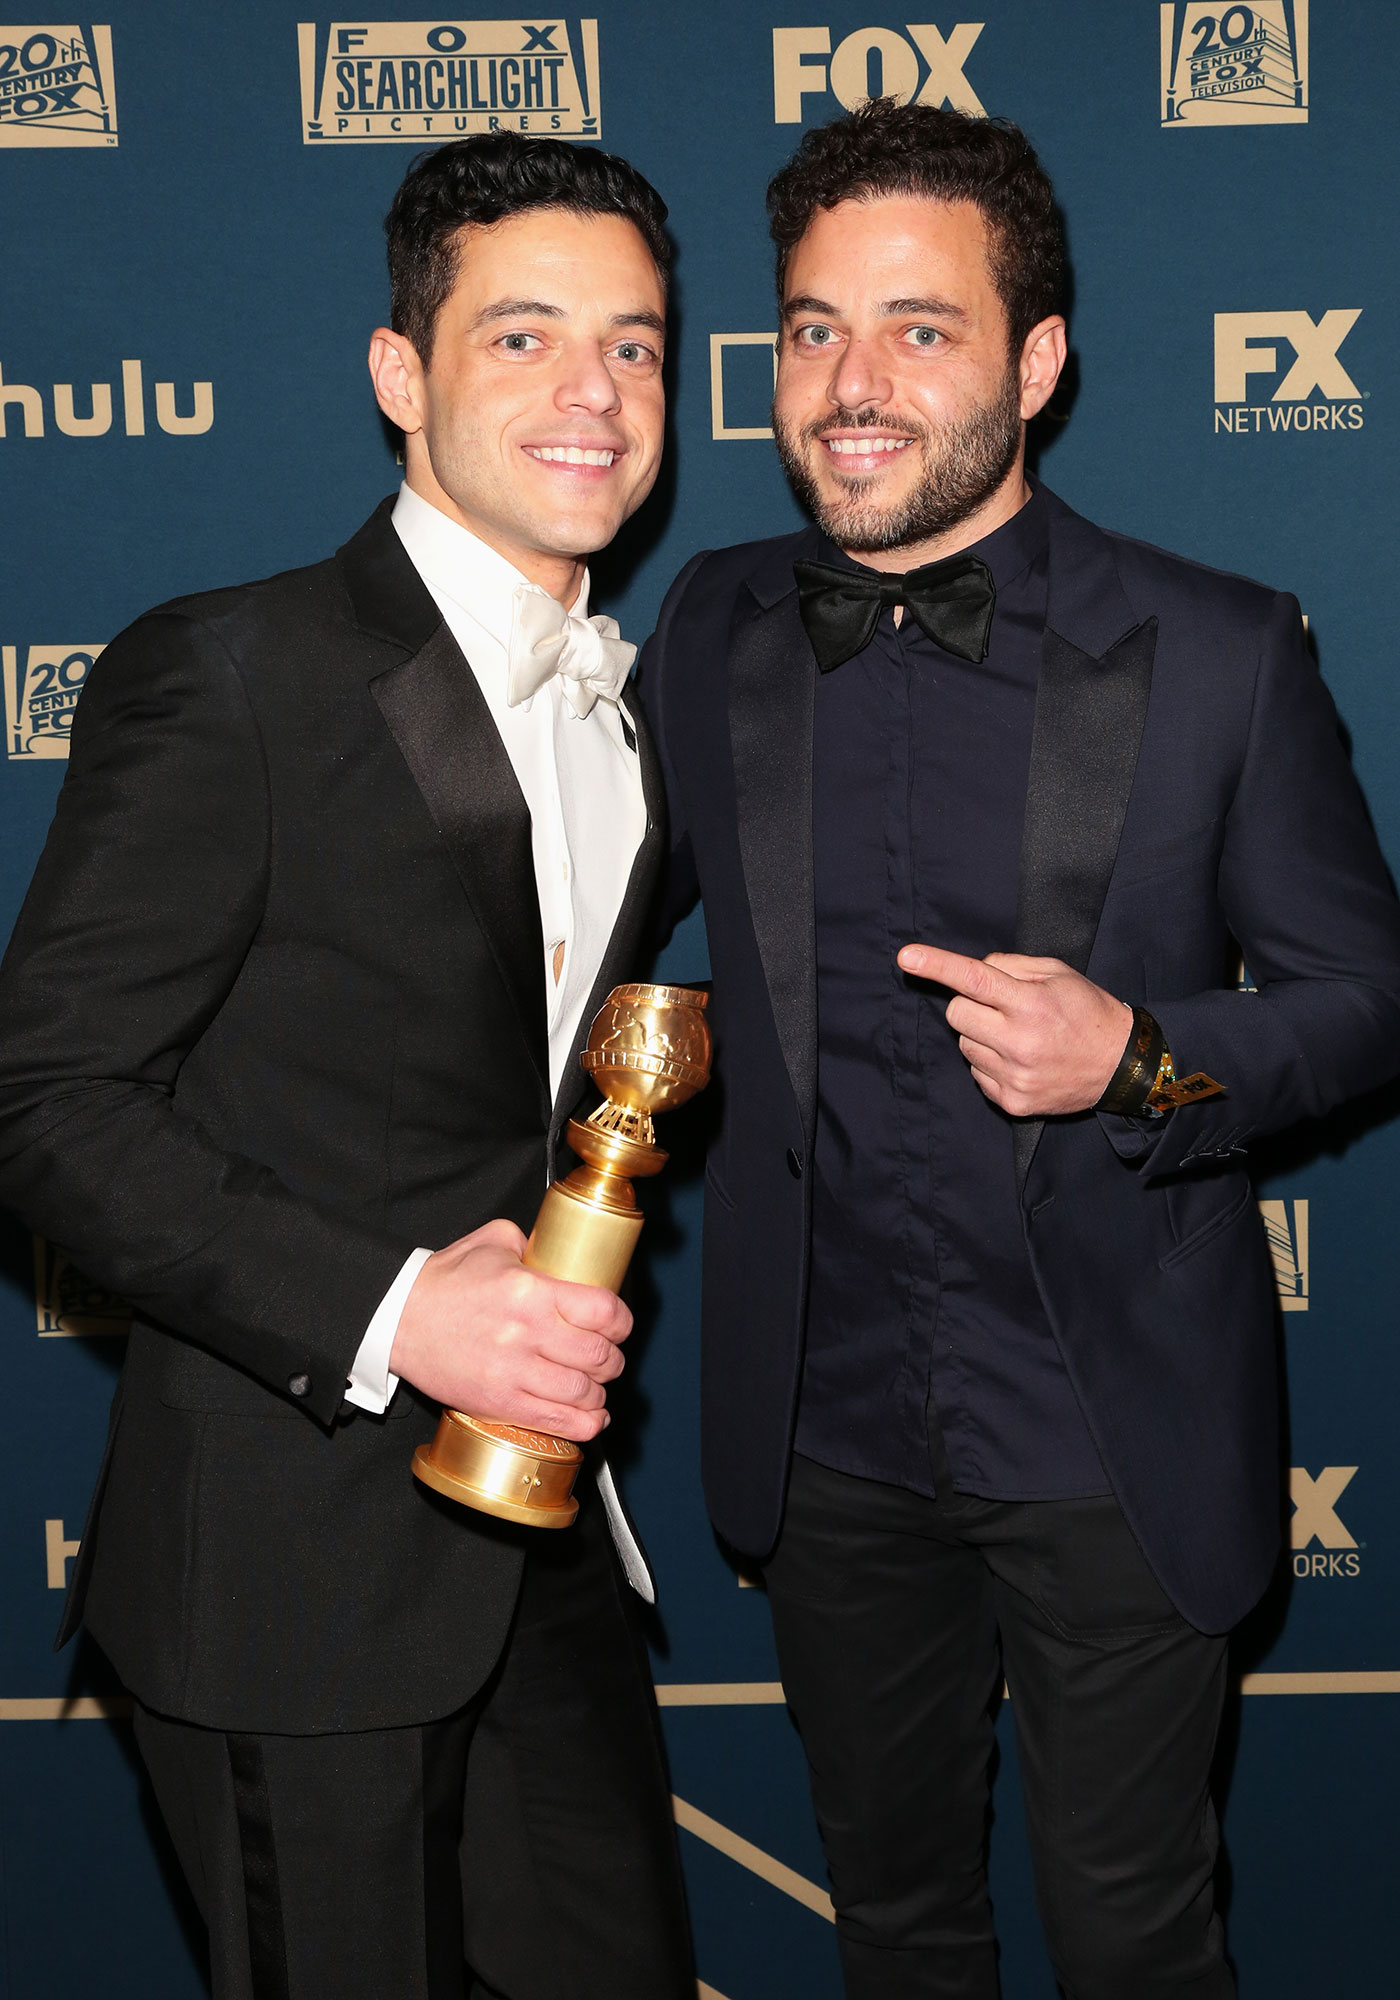 Actor Rami Malek (L) and Sami Malek - Actor Rami Malek (L) and Sami Malek (R) attend the FOX, FX and Hulu 2019 Golden Globe Awards after party at The Beverly Hilton Hotel on January 06, 2019 in Beverly Hills, California.